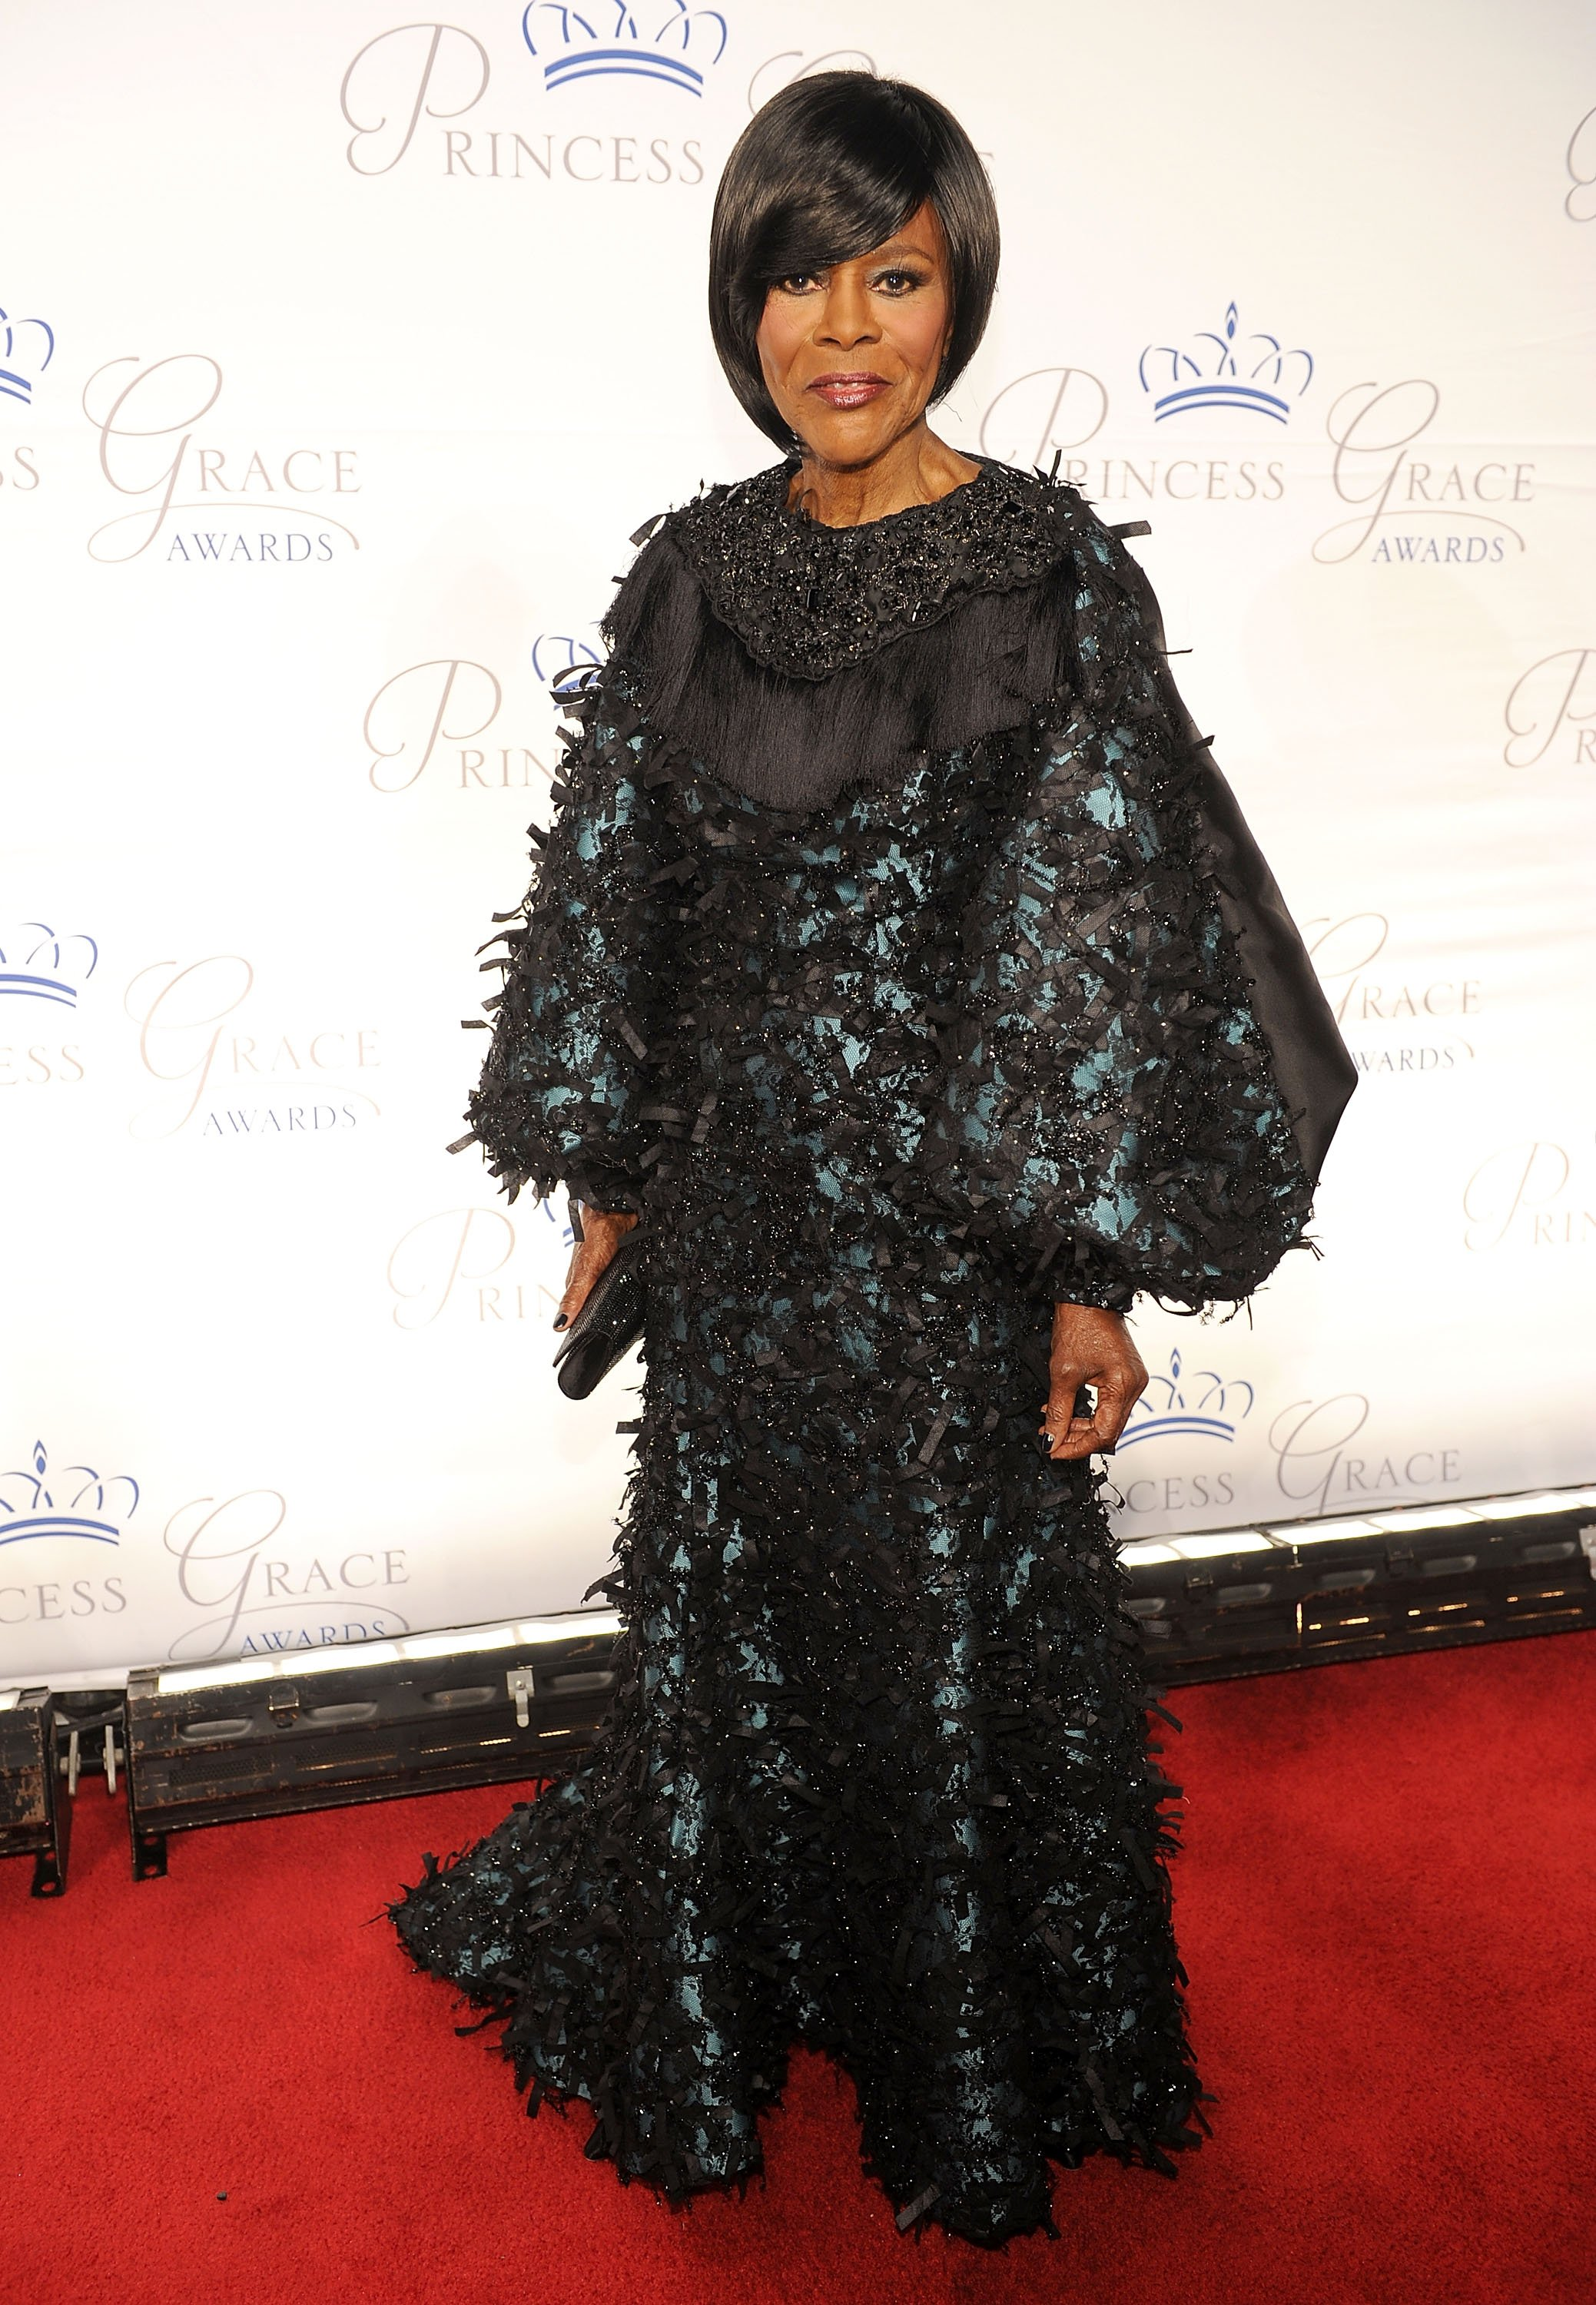 Cicely Tyson at the 2013 Princess Grace Awards Gala attending as a recipient of the Prince Rainier III Award. | Photo: Getty Images